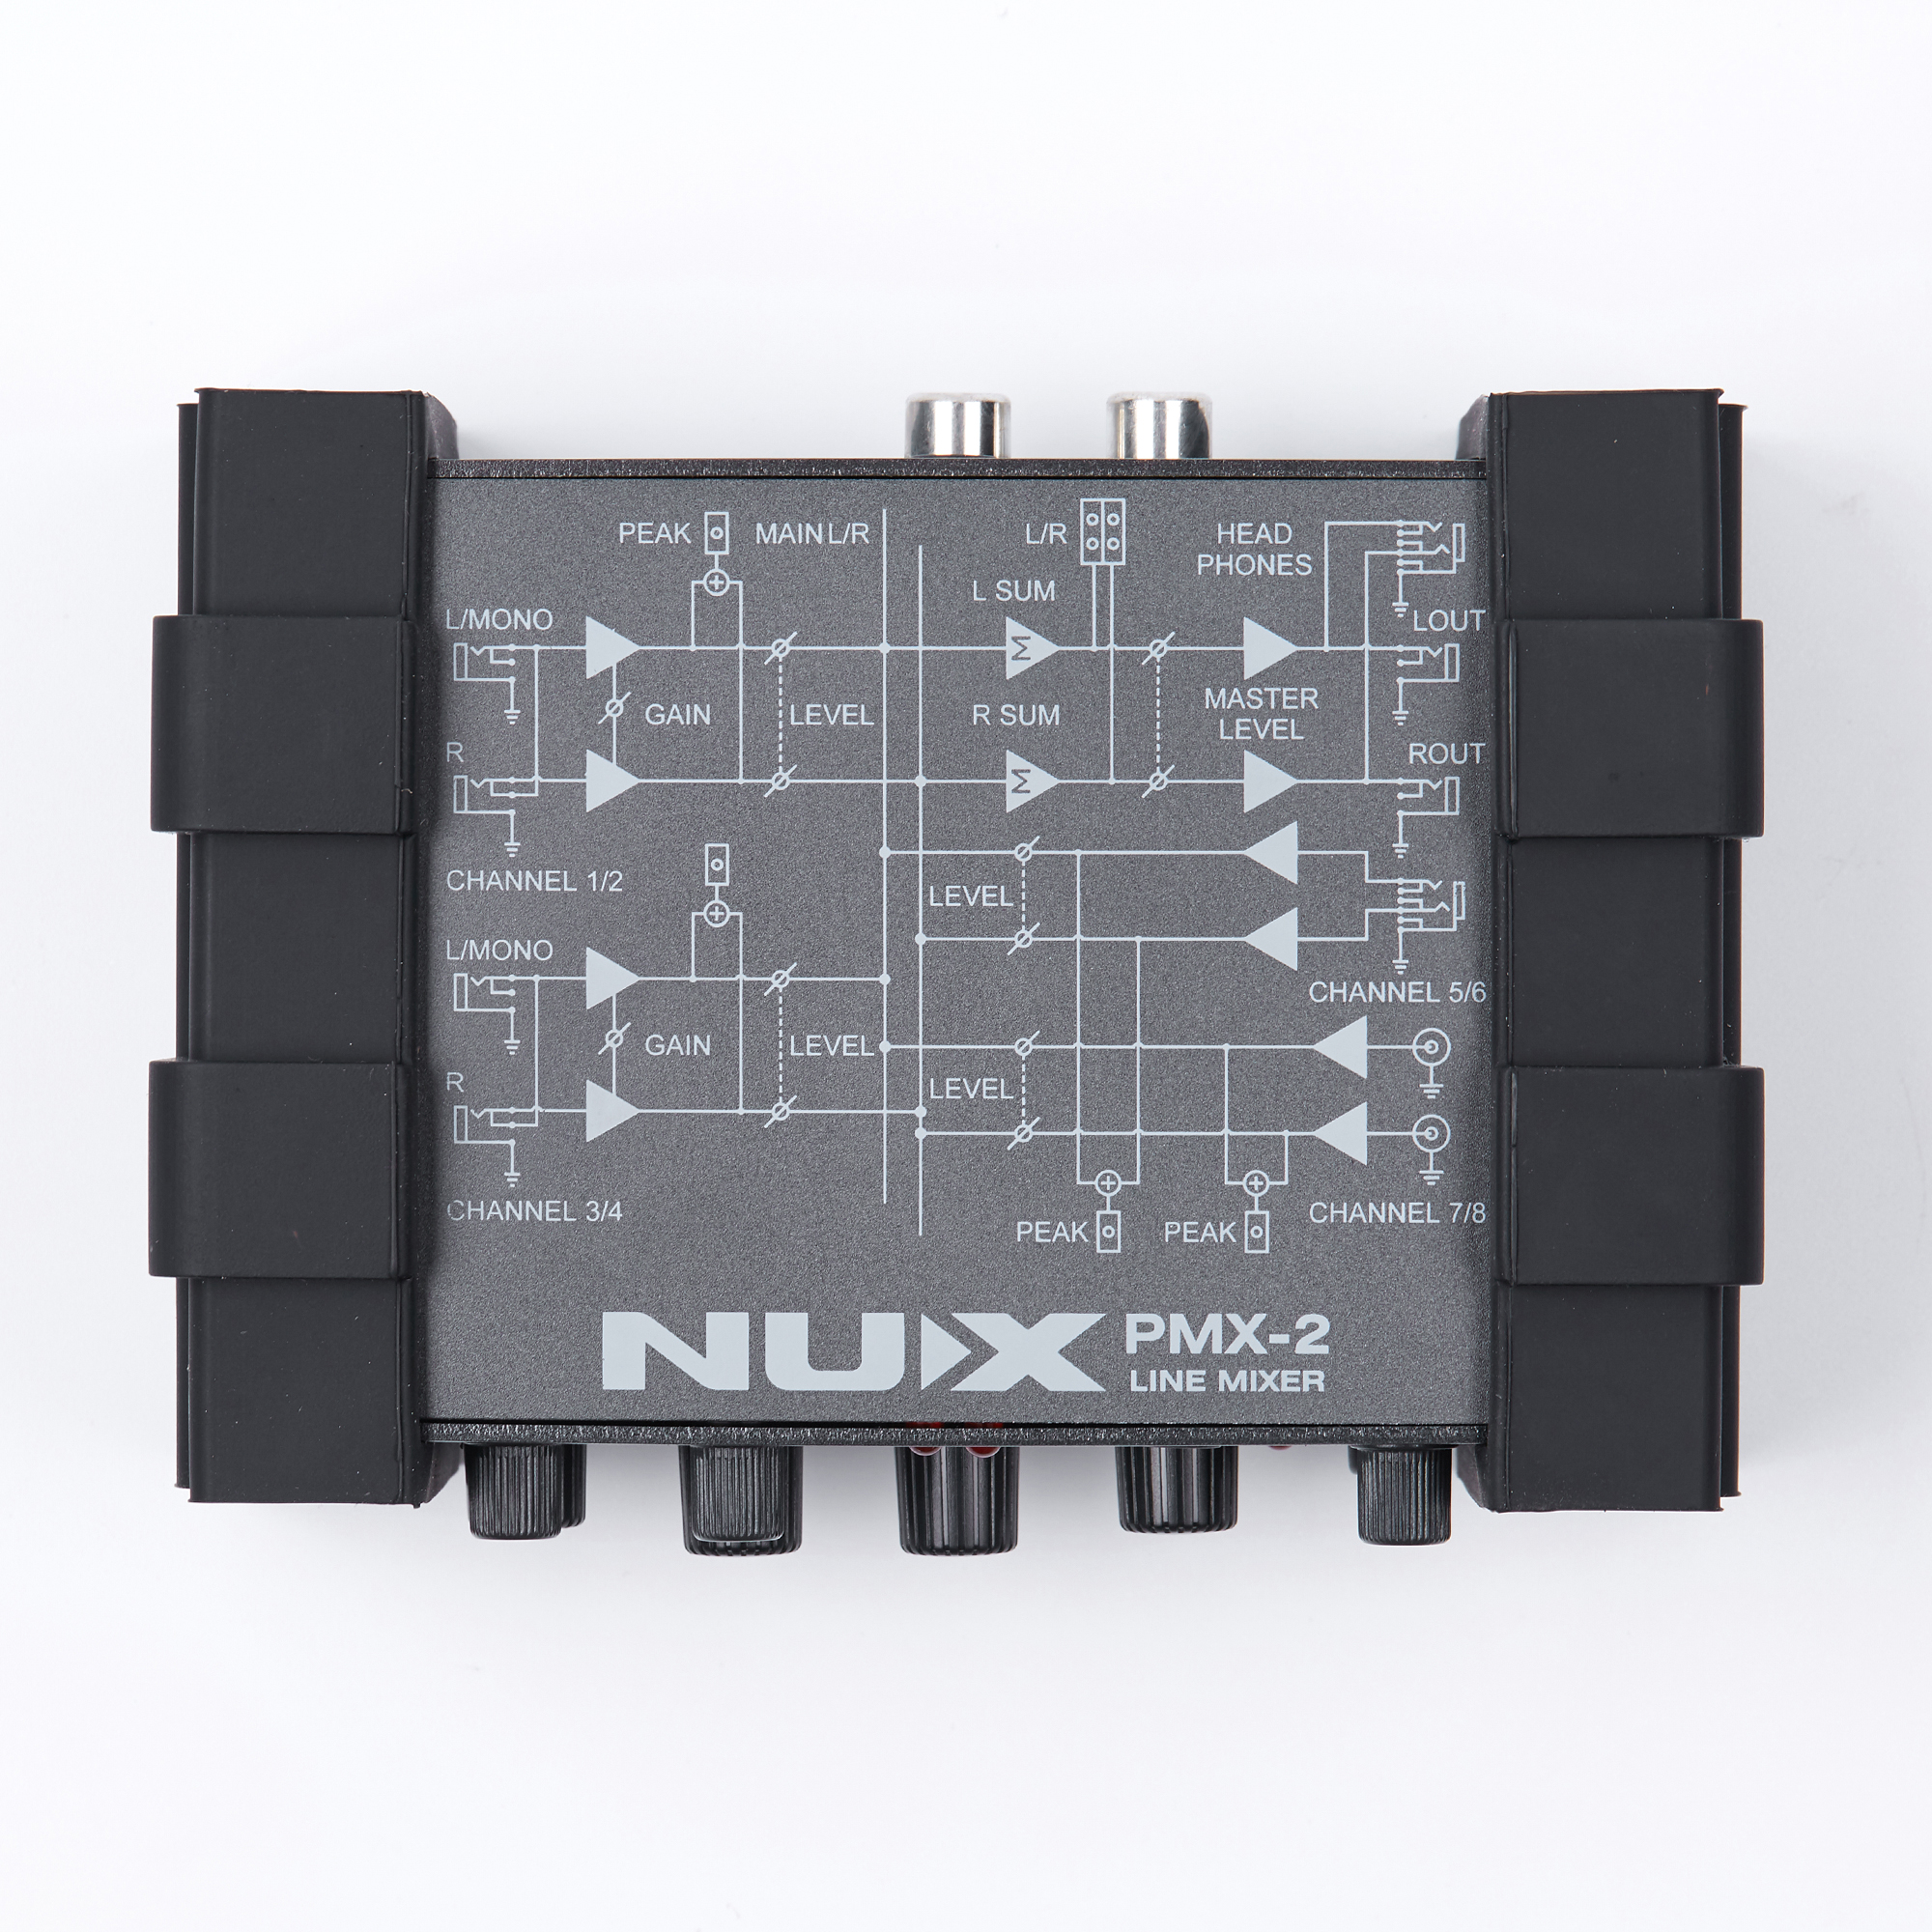 Gain Control 8 Inputs and 2 Outputs NUX PMX-2 Multi-Channel Mini Mixer 30 Musical Instruments Accessories for Guitar Bass Player полотенце bon appetit кухонное махровое япония 38х63см печатное